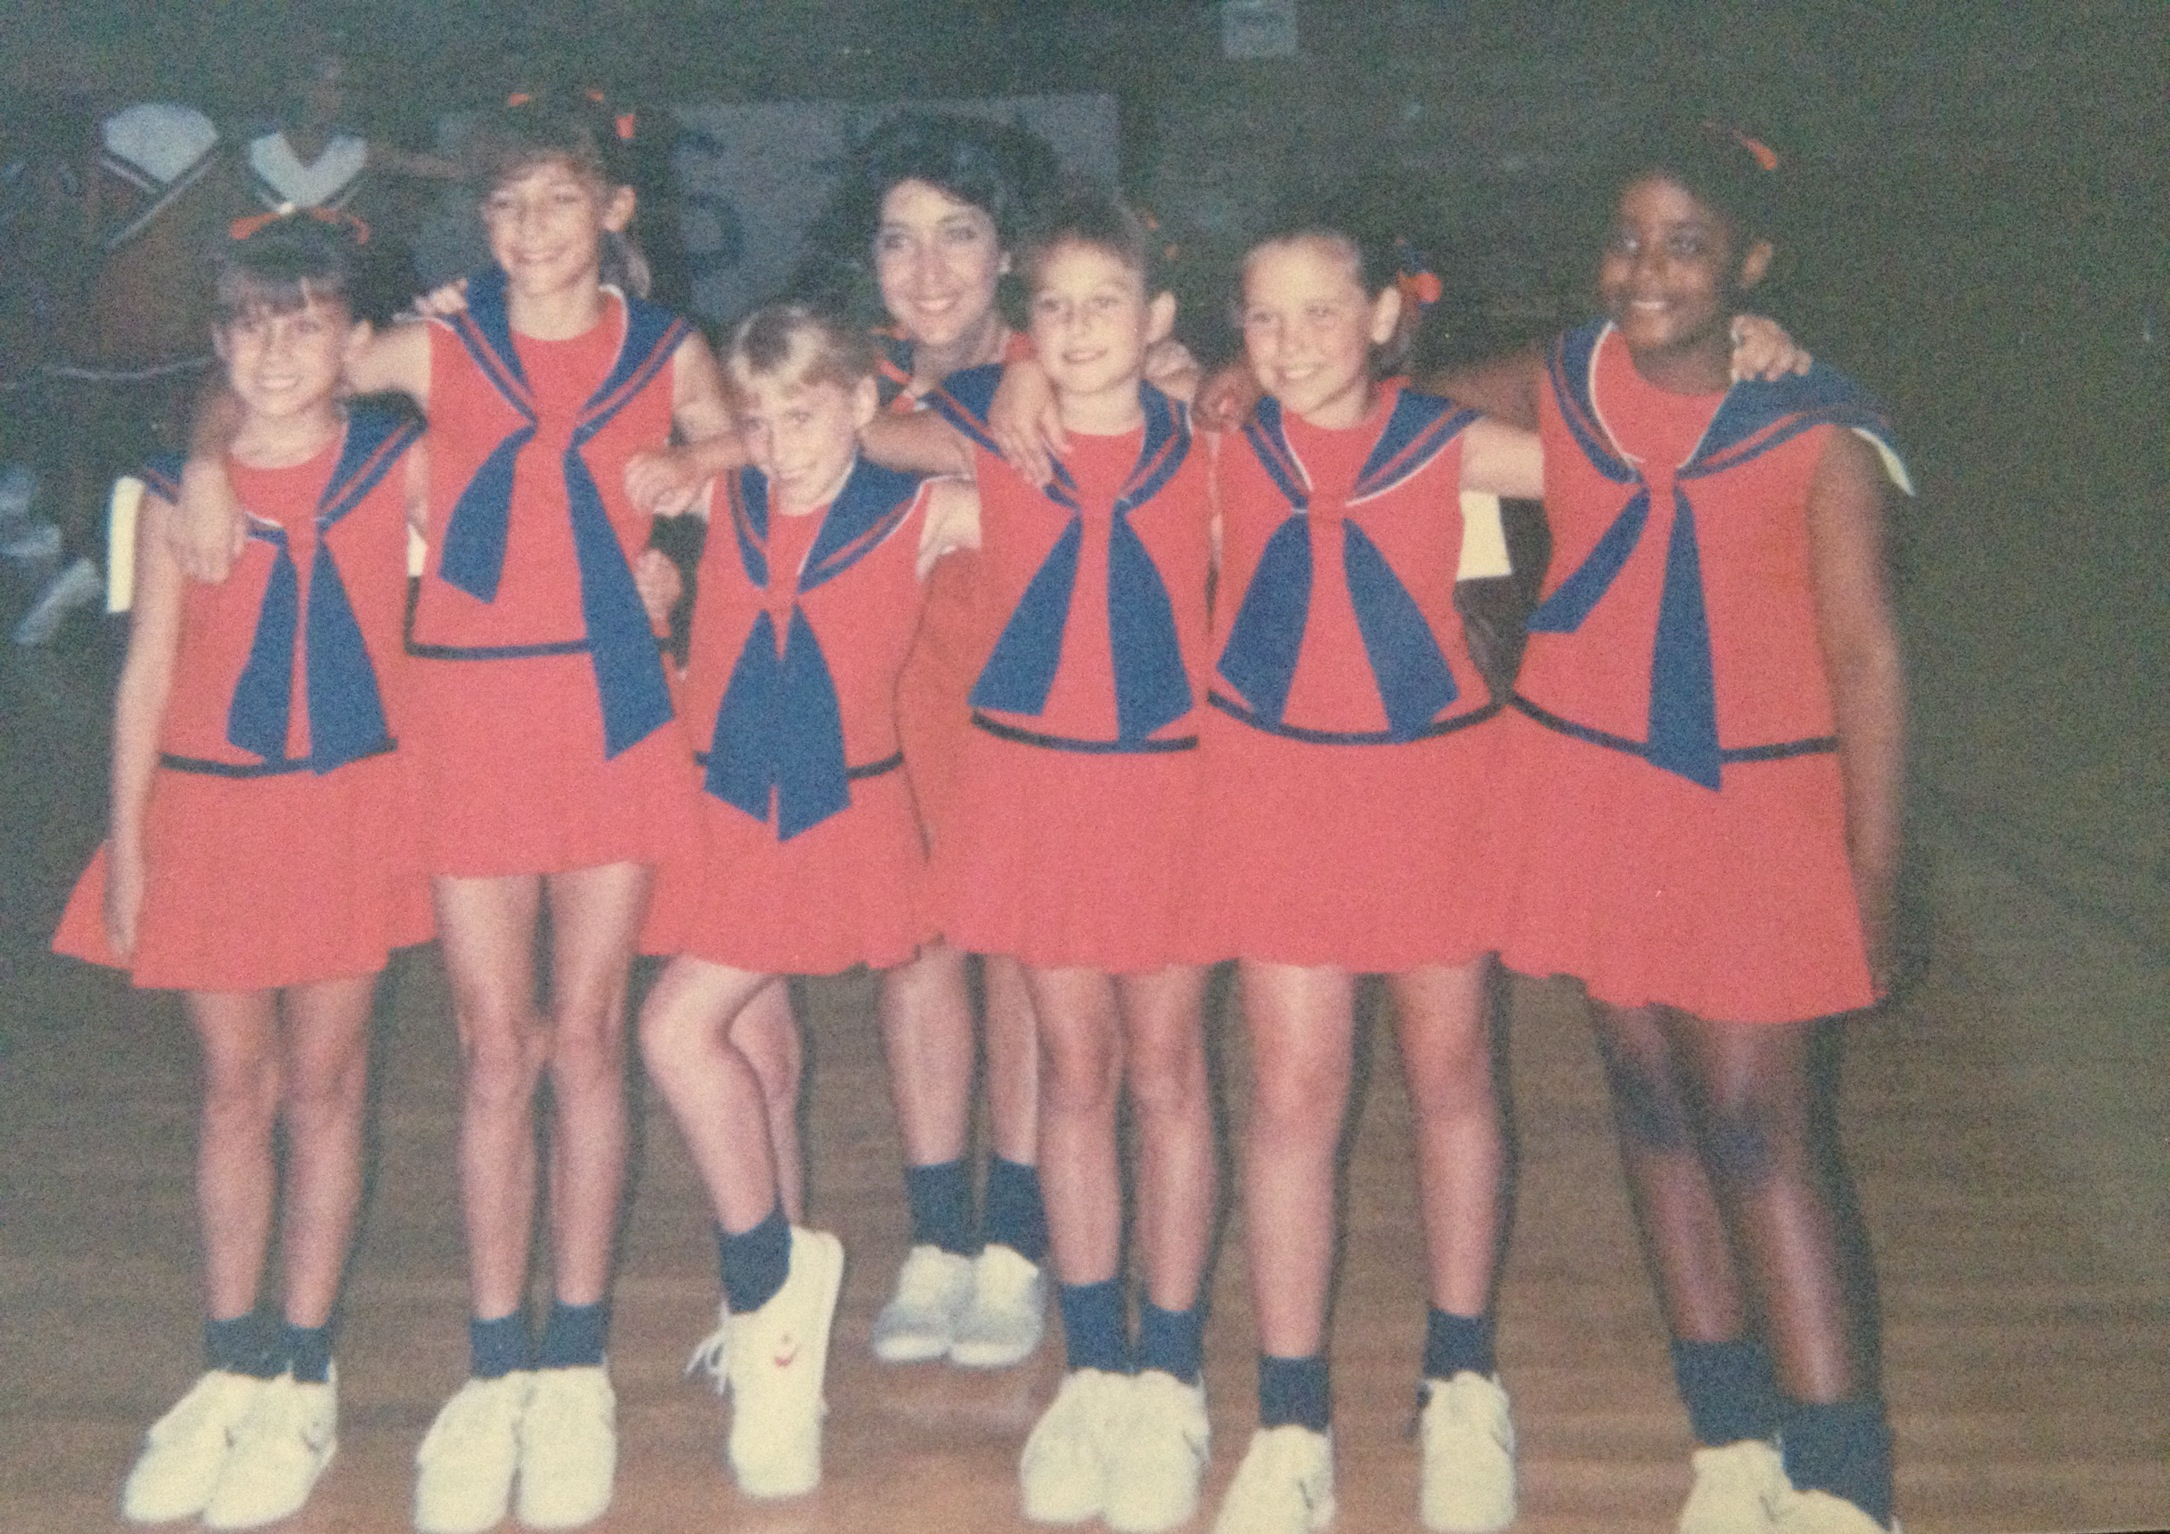 I think you can guess which one is me. Lee is the second girl from the right.